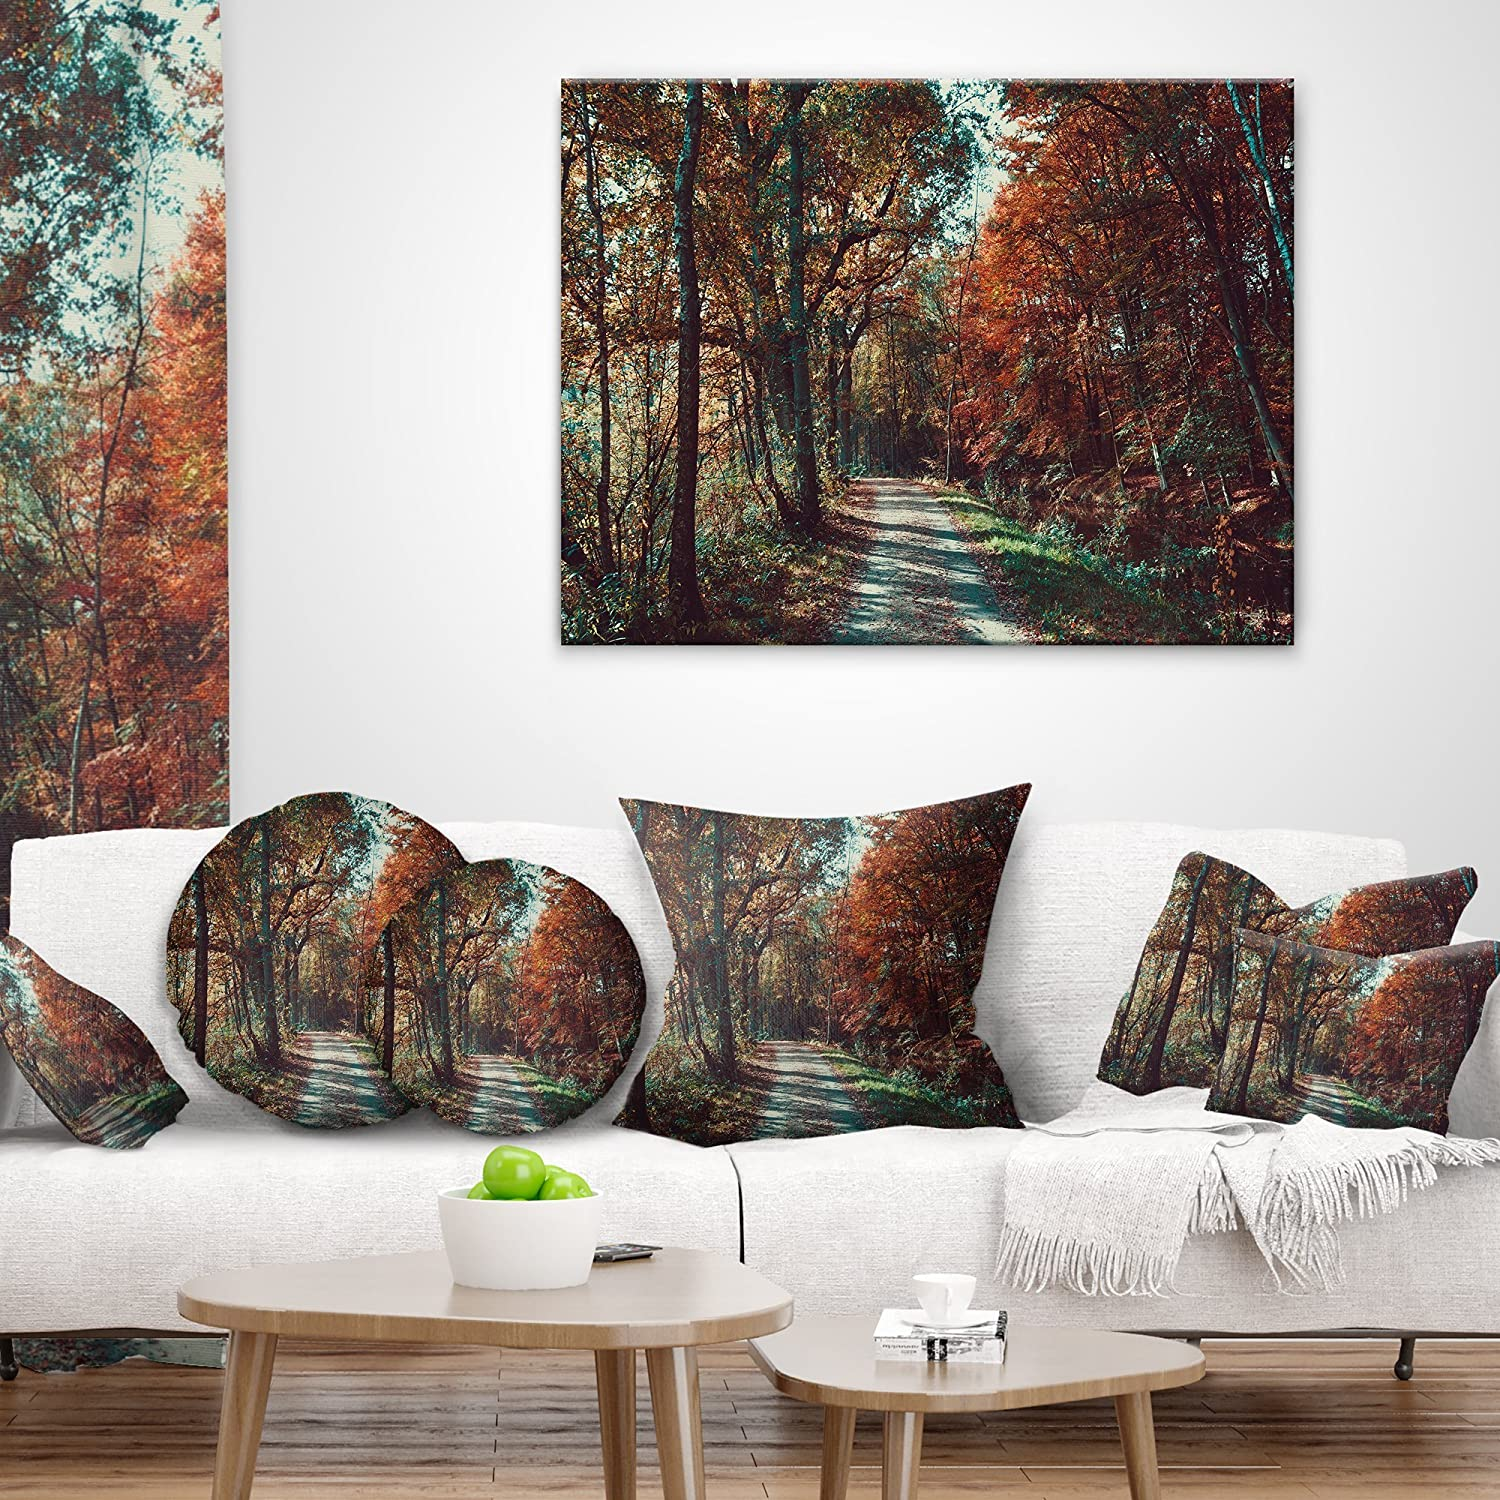 Designart Cu9736 18 18 Road Through Red Fall Forest Landscape Photo Throw Cushion Pillow Cover For Living Room X 18 In Sofa 18 In Home Kitchen Decorative Pillows Inserts Covers